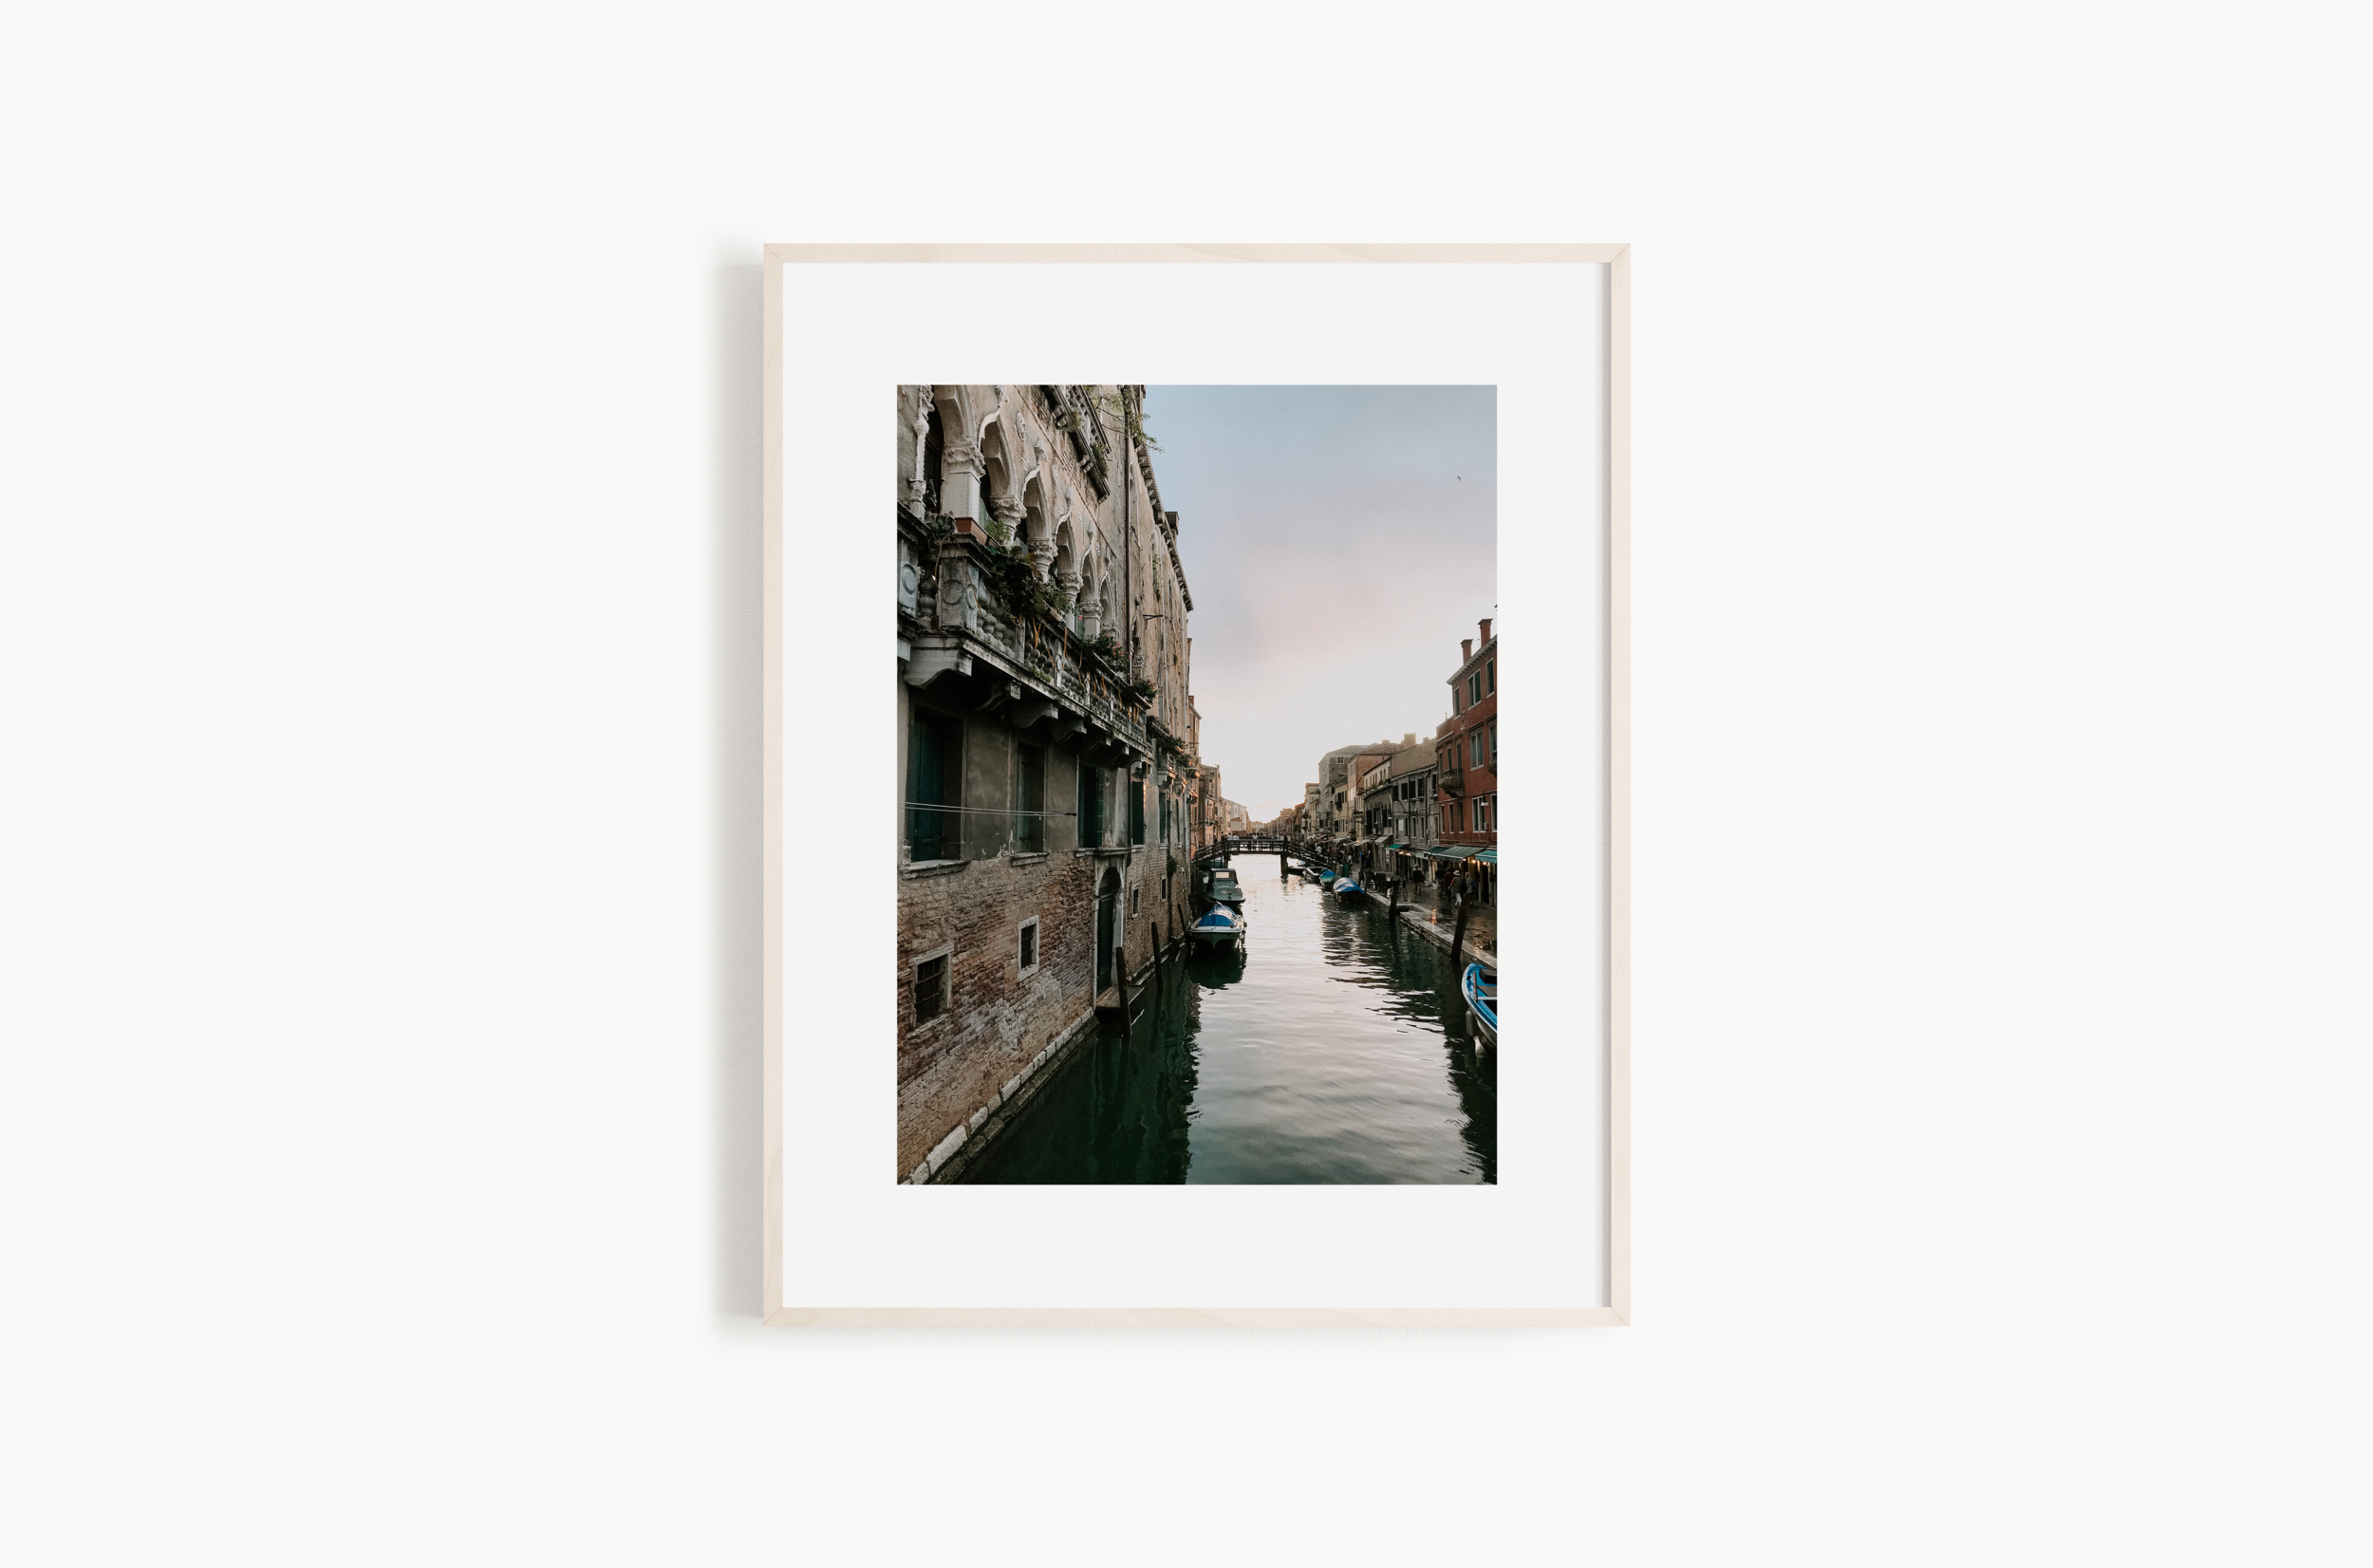 Braevin-Venice-Vertical-01.png